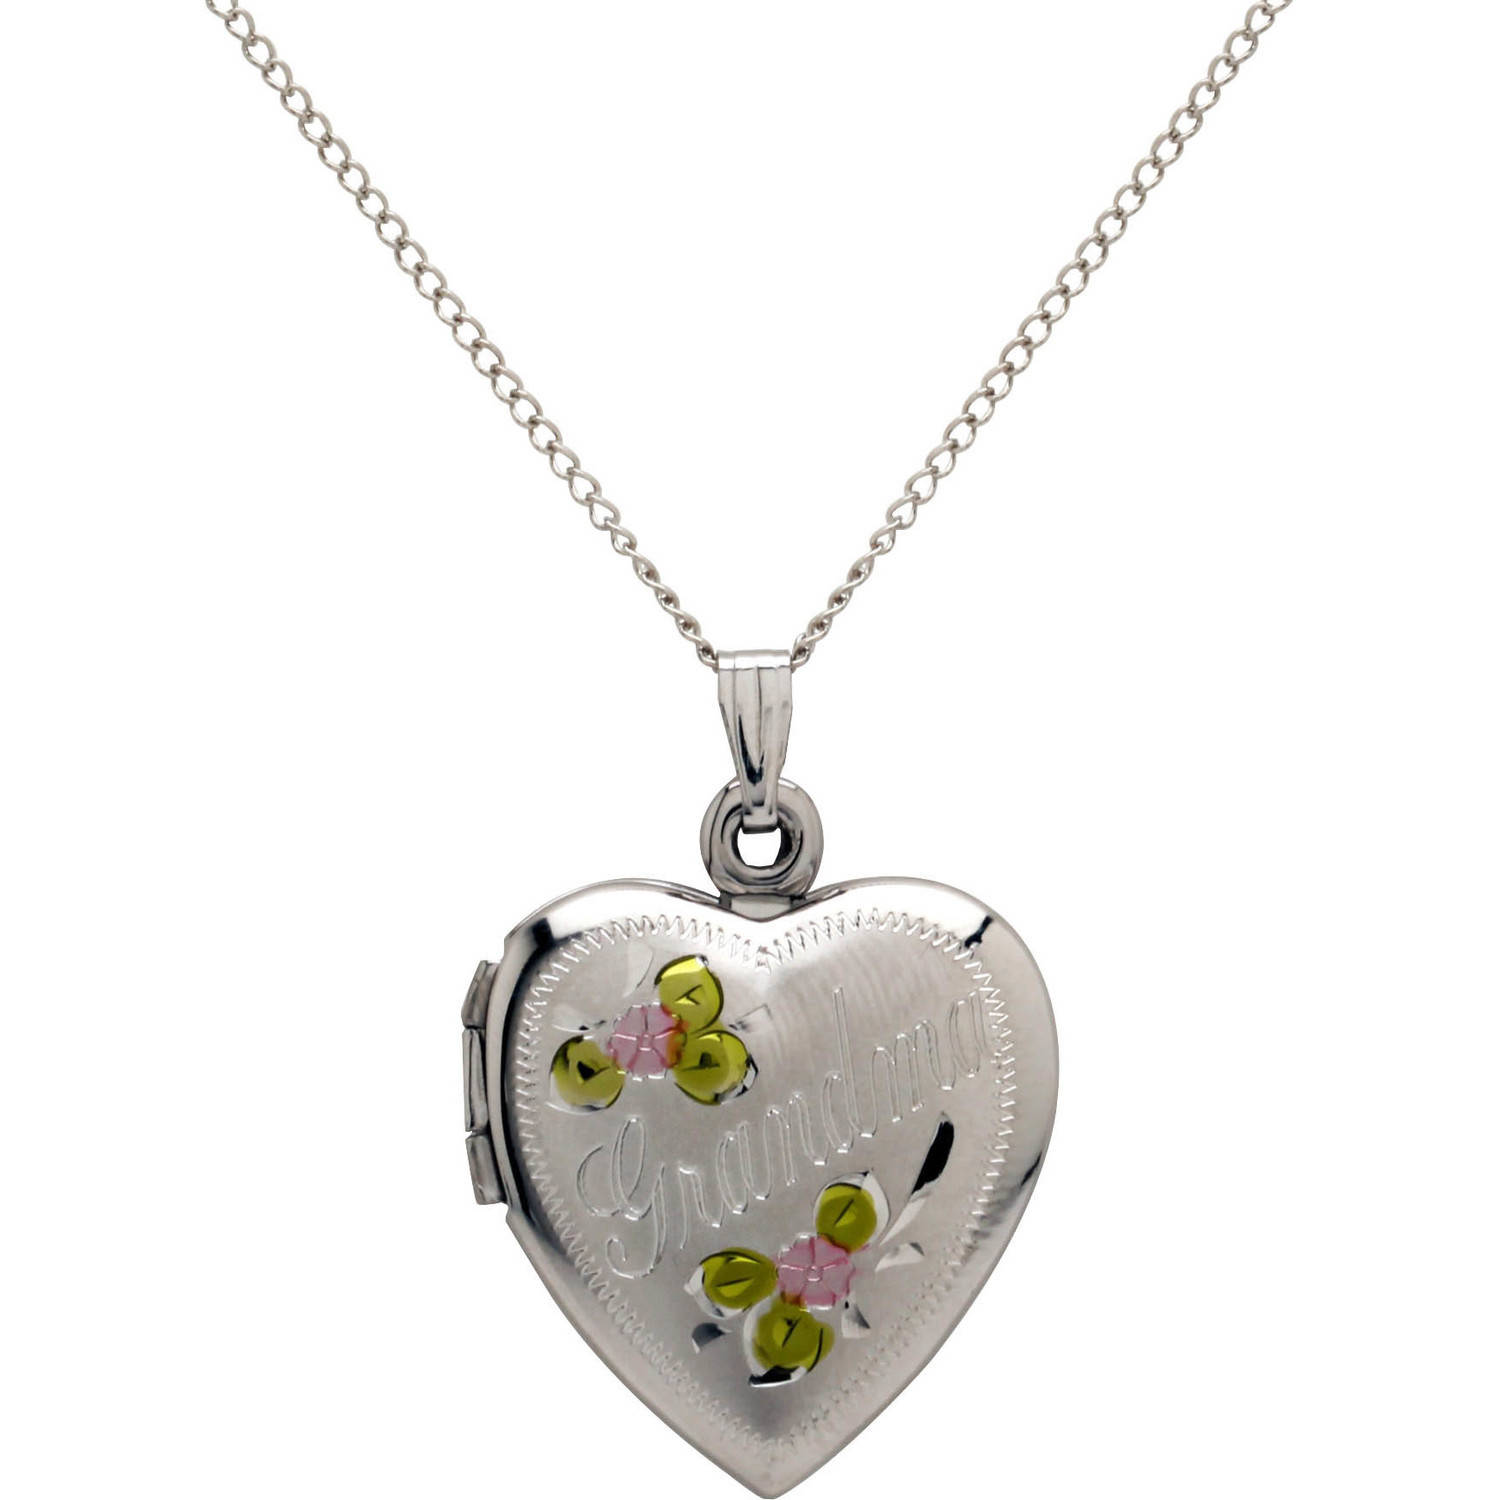 """Heart """"Grandma"""" and Painted Flowers Locket in Sterling Silver, 18"""" by Richline Group"""